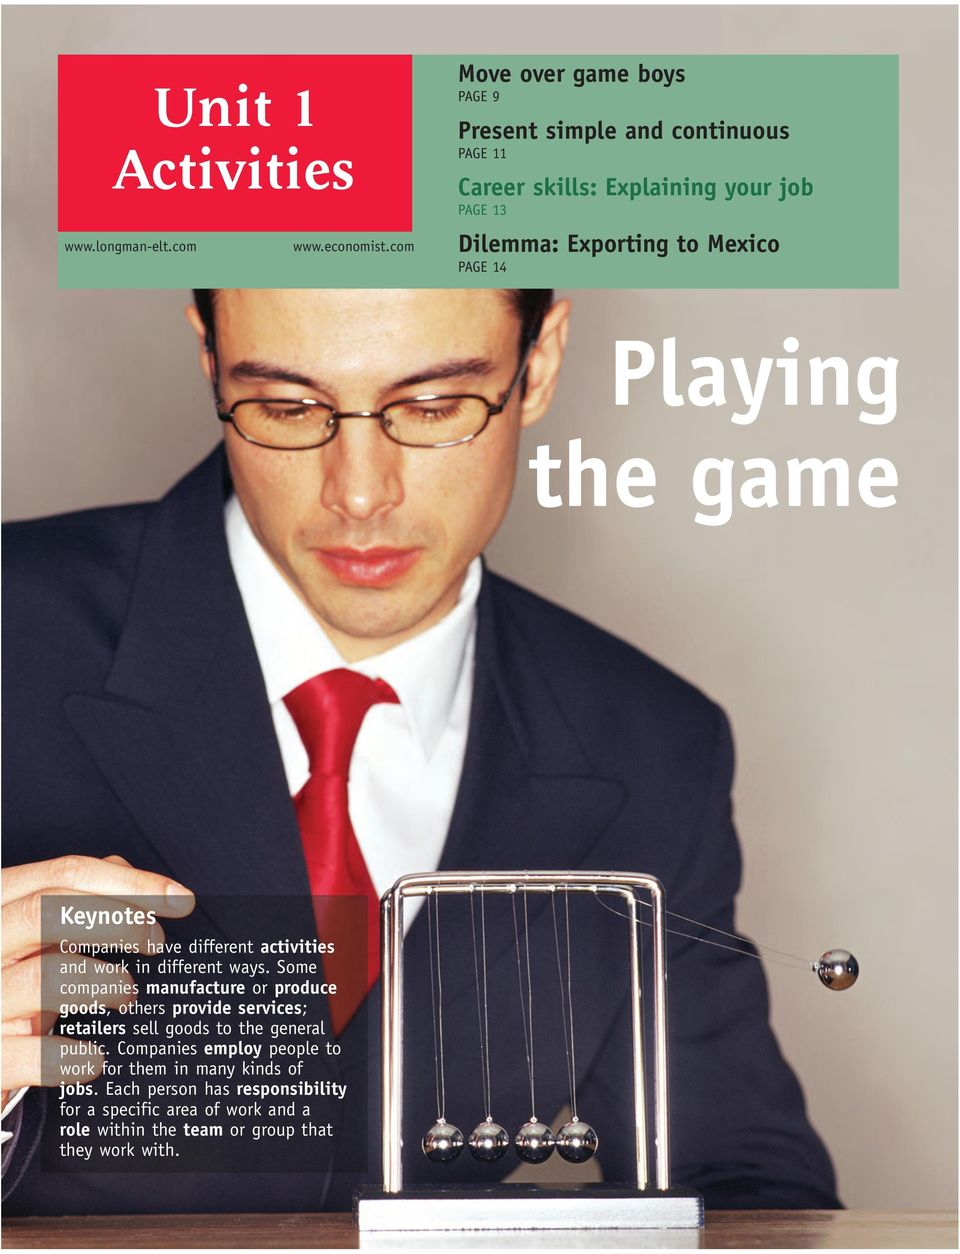 14 Playing the game Keynotes Companies have different activities and work in different ways.